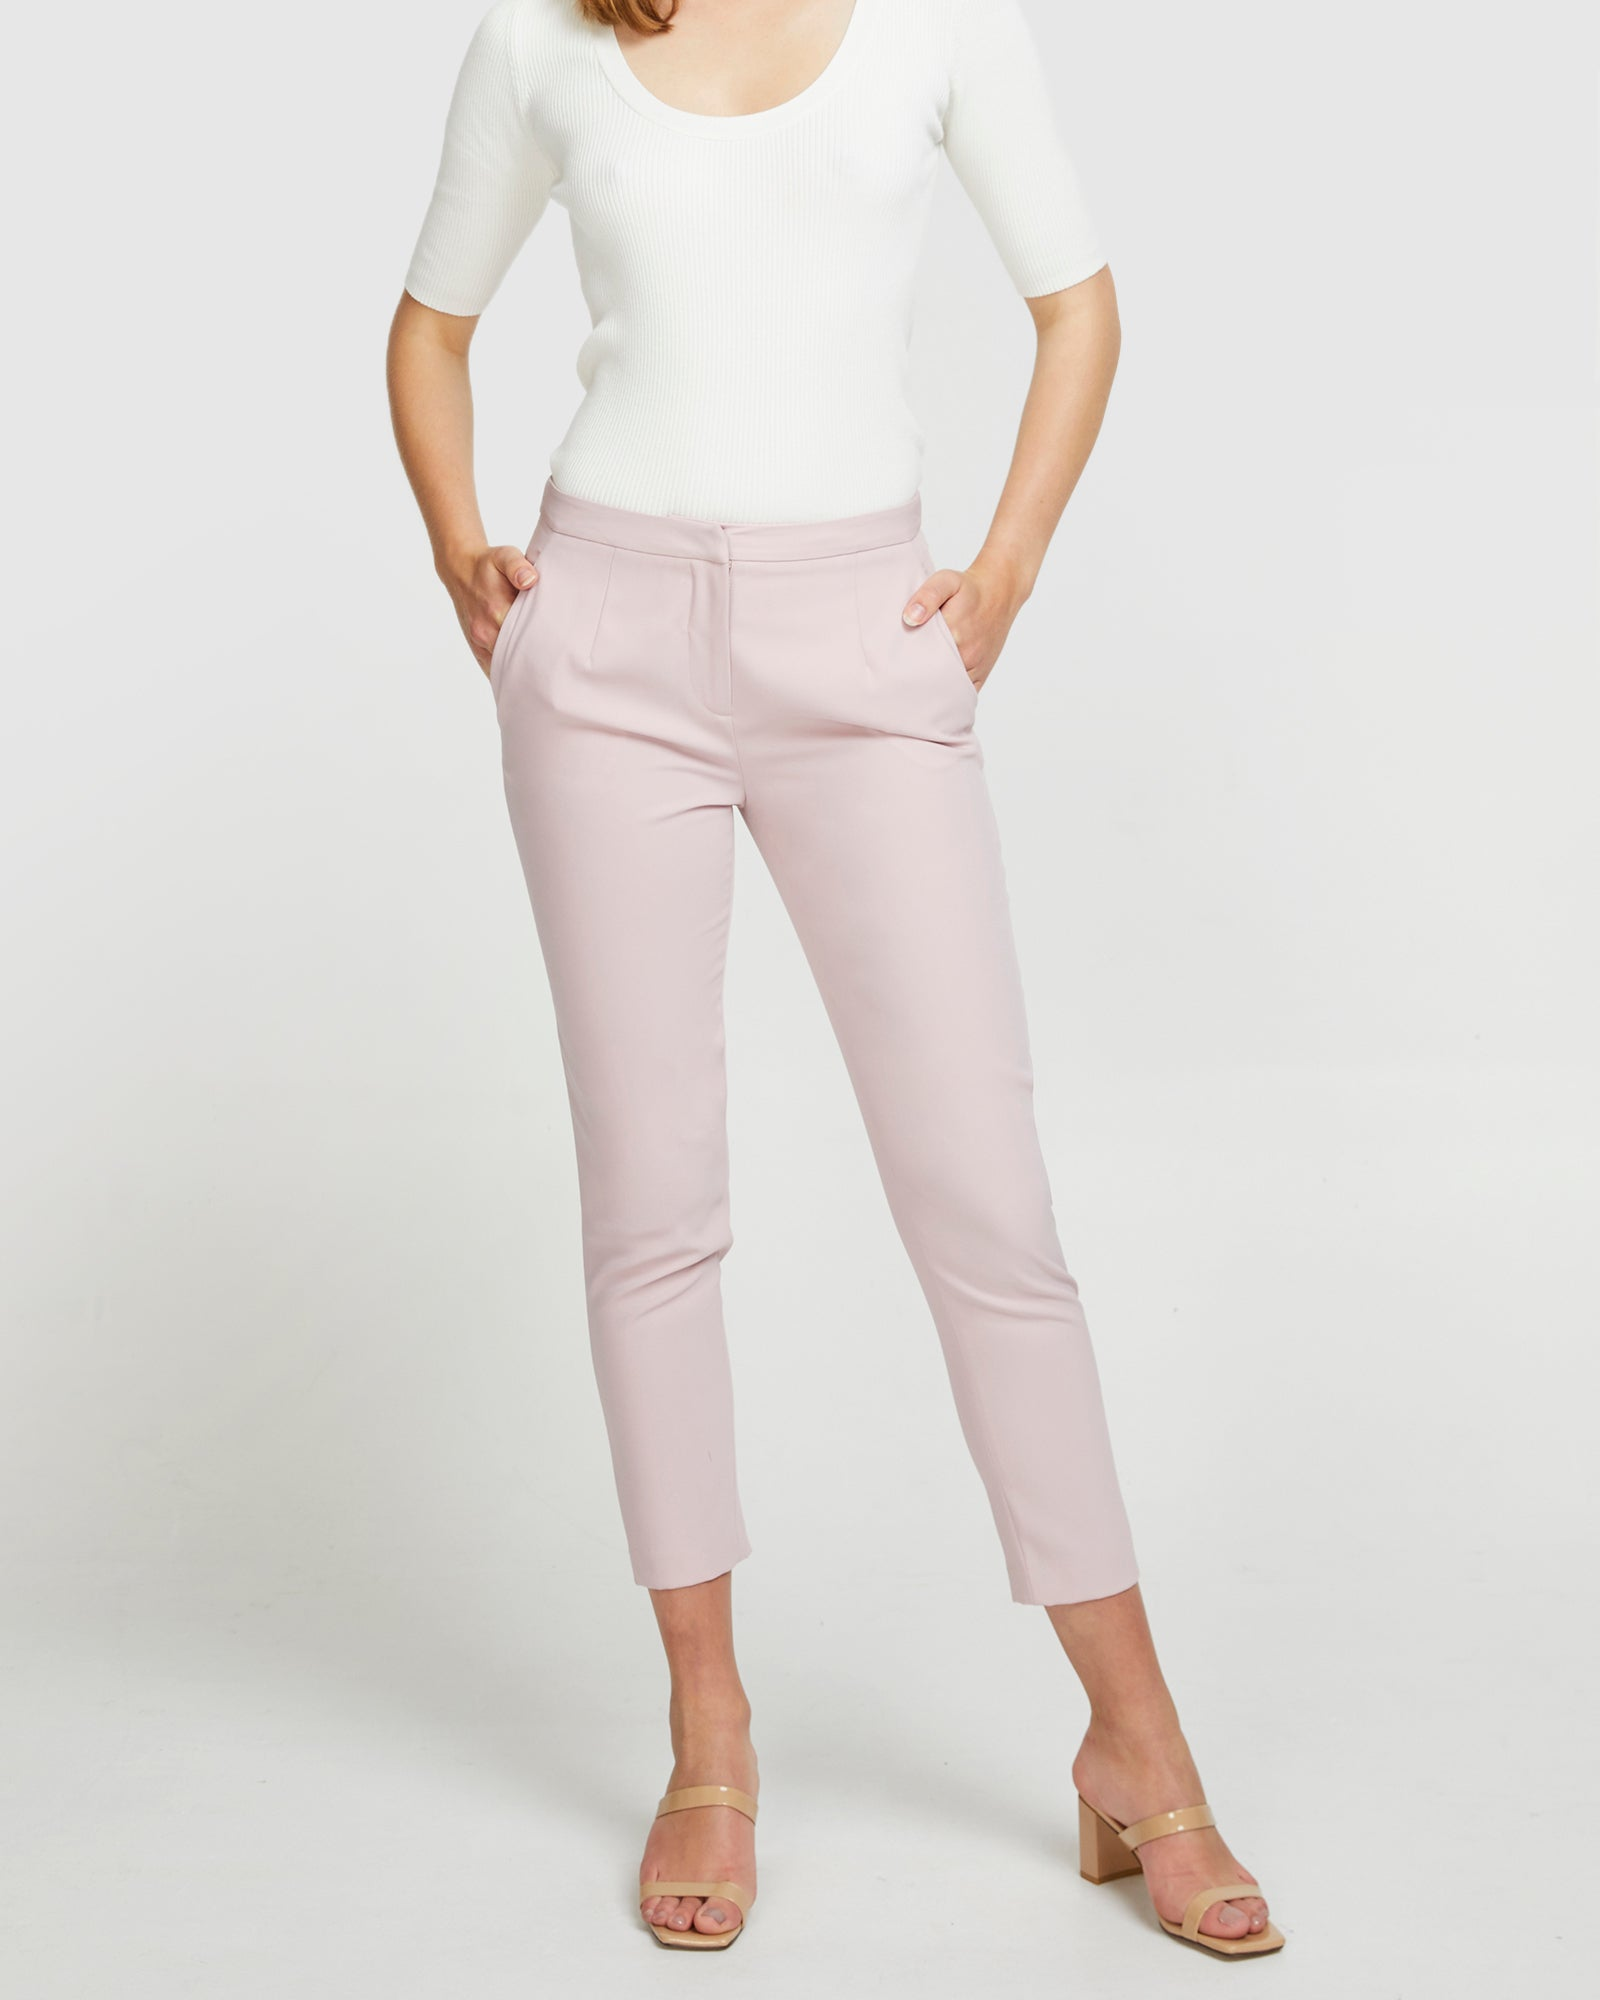 Belted Suit Set - Slim Leg Trousers - Rose Pink